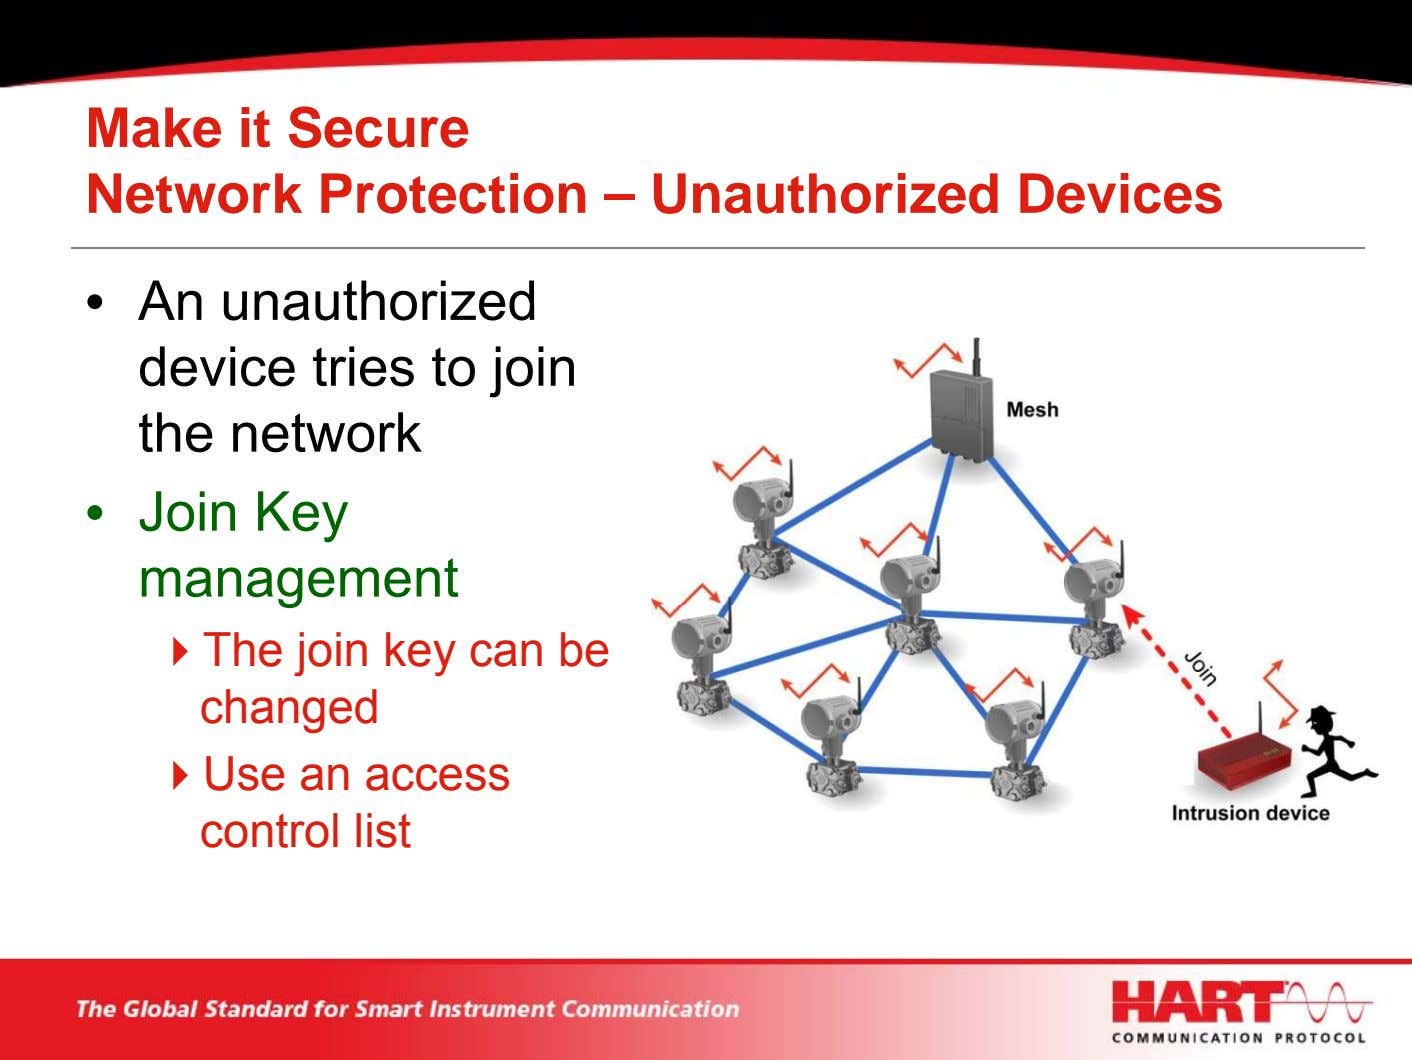 Make it Secure Network Protection – Unauthorized Devices • An unauthorized device tries to join